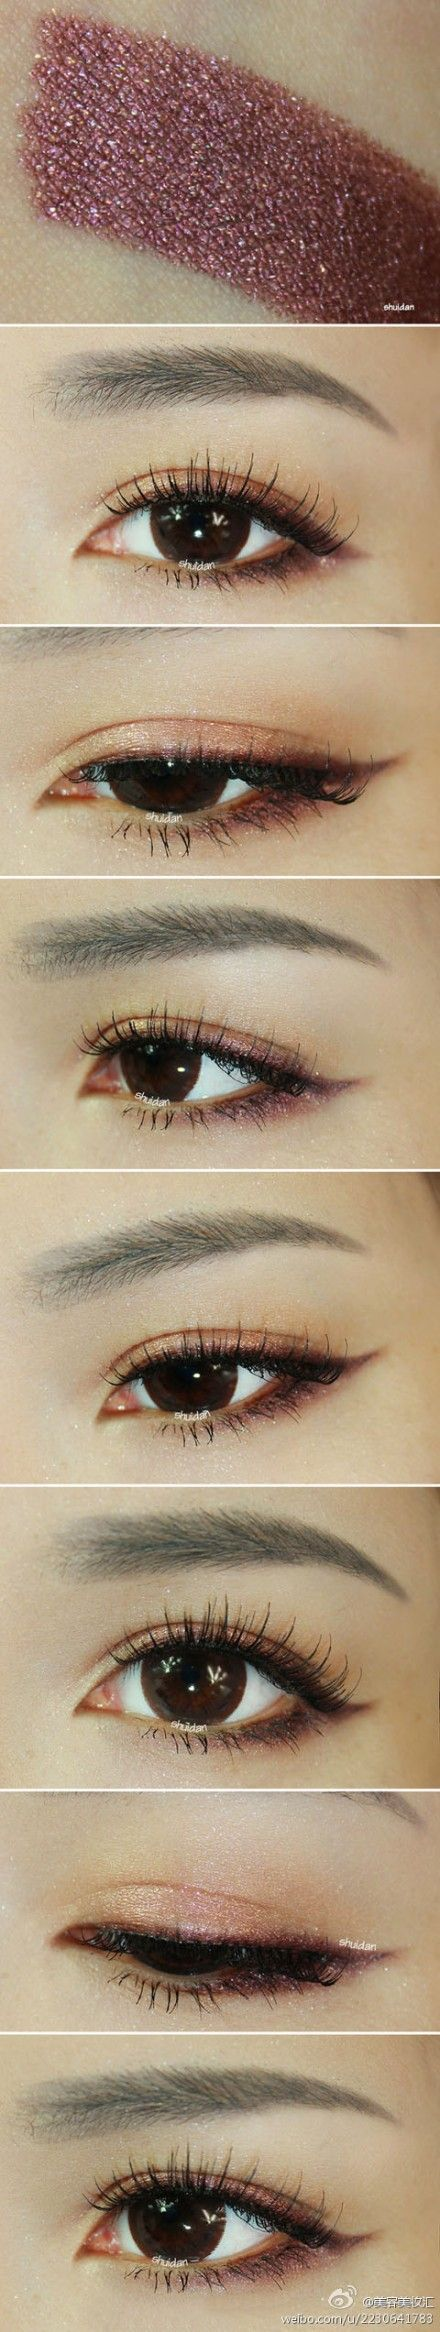 "Cute makeup that women who go for that popular shitty artificial contouring, super smokey eyes and ""perfect"" looking eyebrows thinking they're looking like Kim Kardashian could learn ♡"